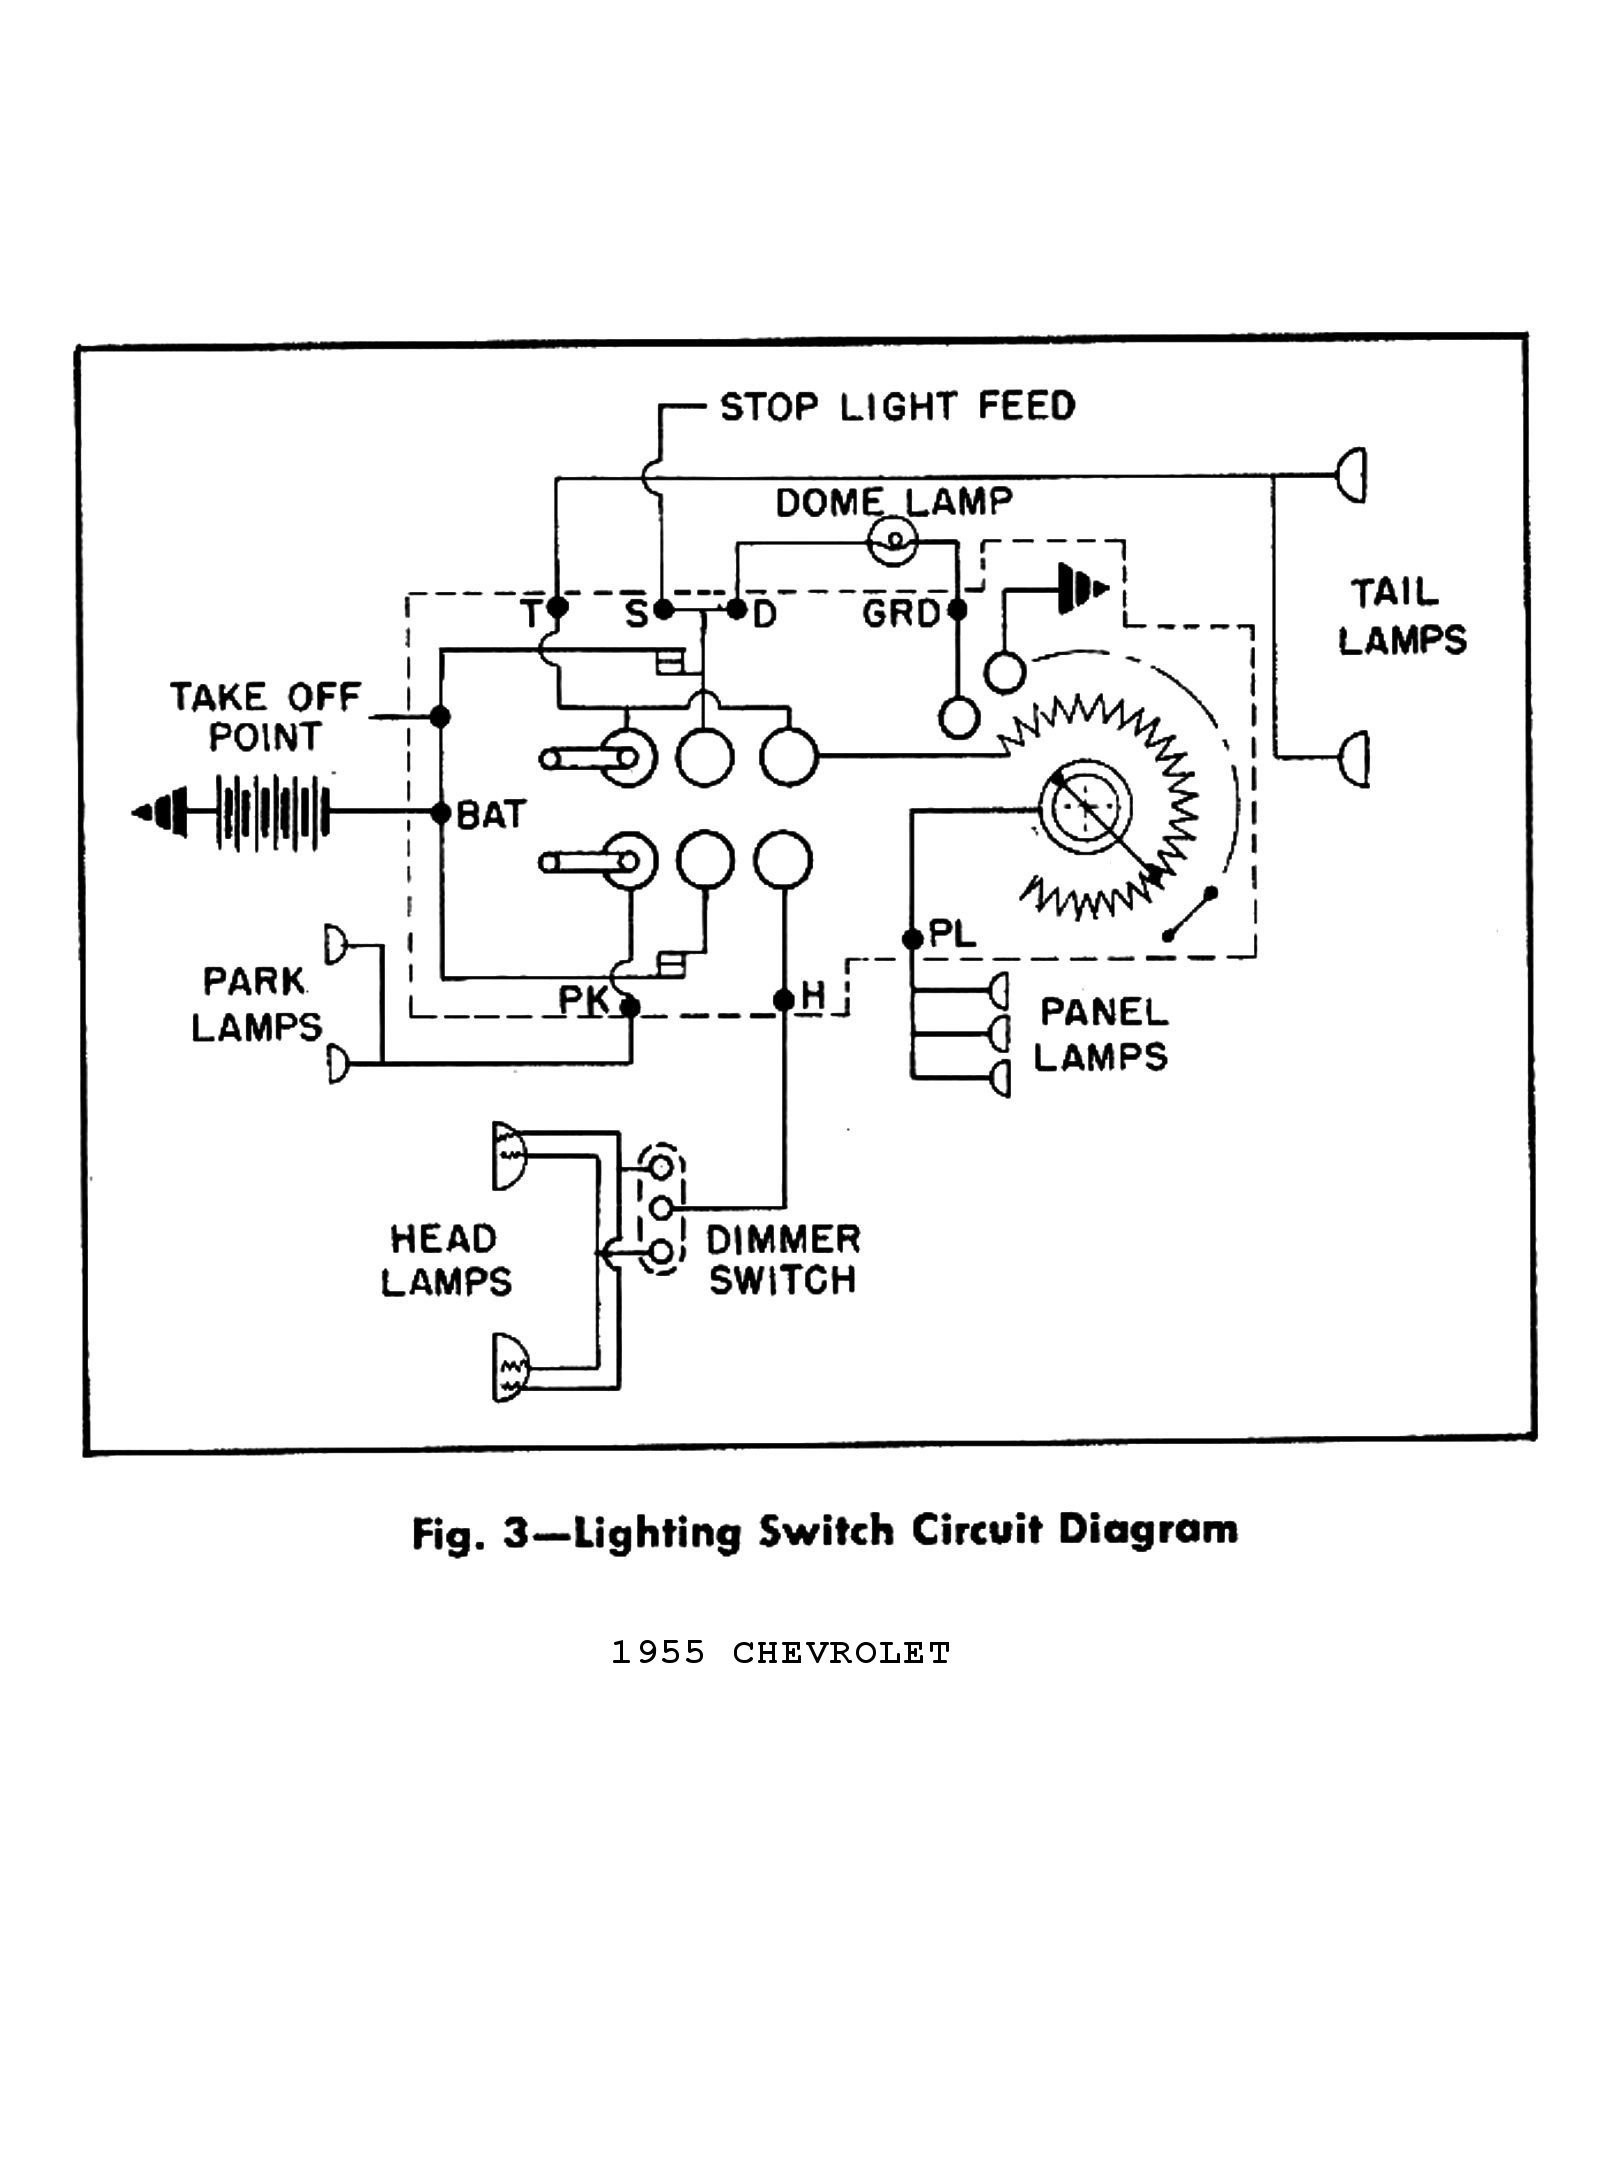 Ford 5000 Tractor Parts Diagram ford 3910 Wiring Diagram Another Blog About Wiring Diagram • Of Ford 5000 Tractor Parts Diagram